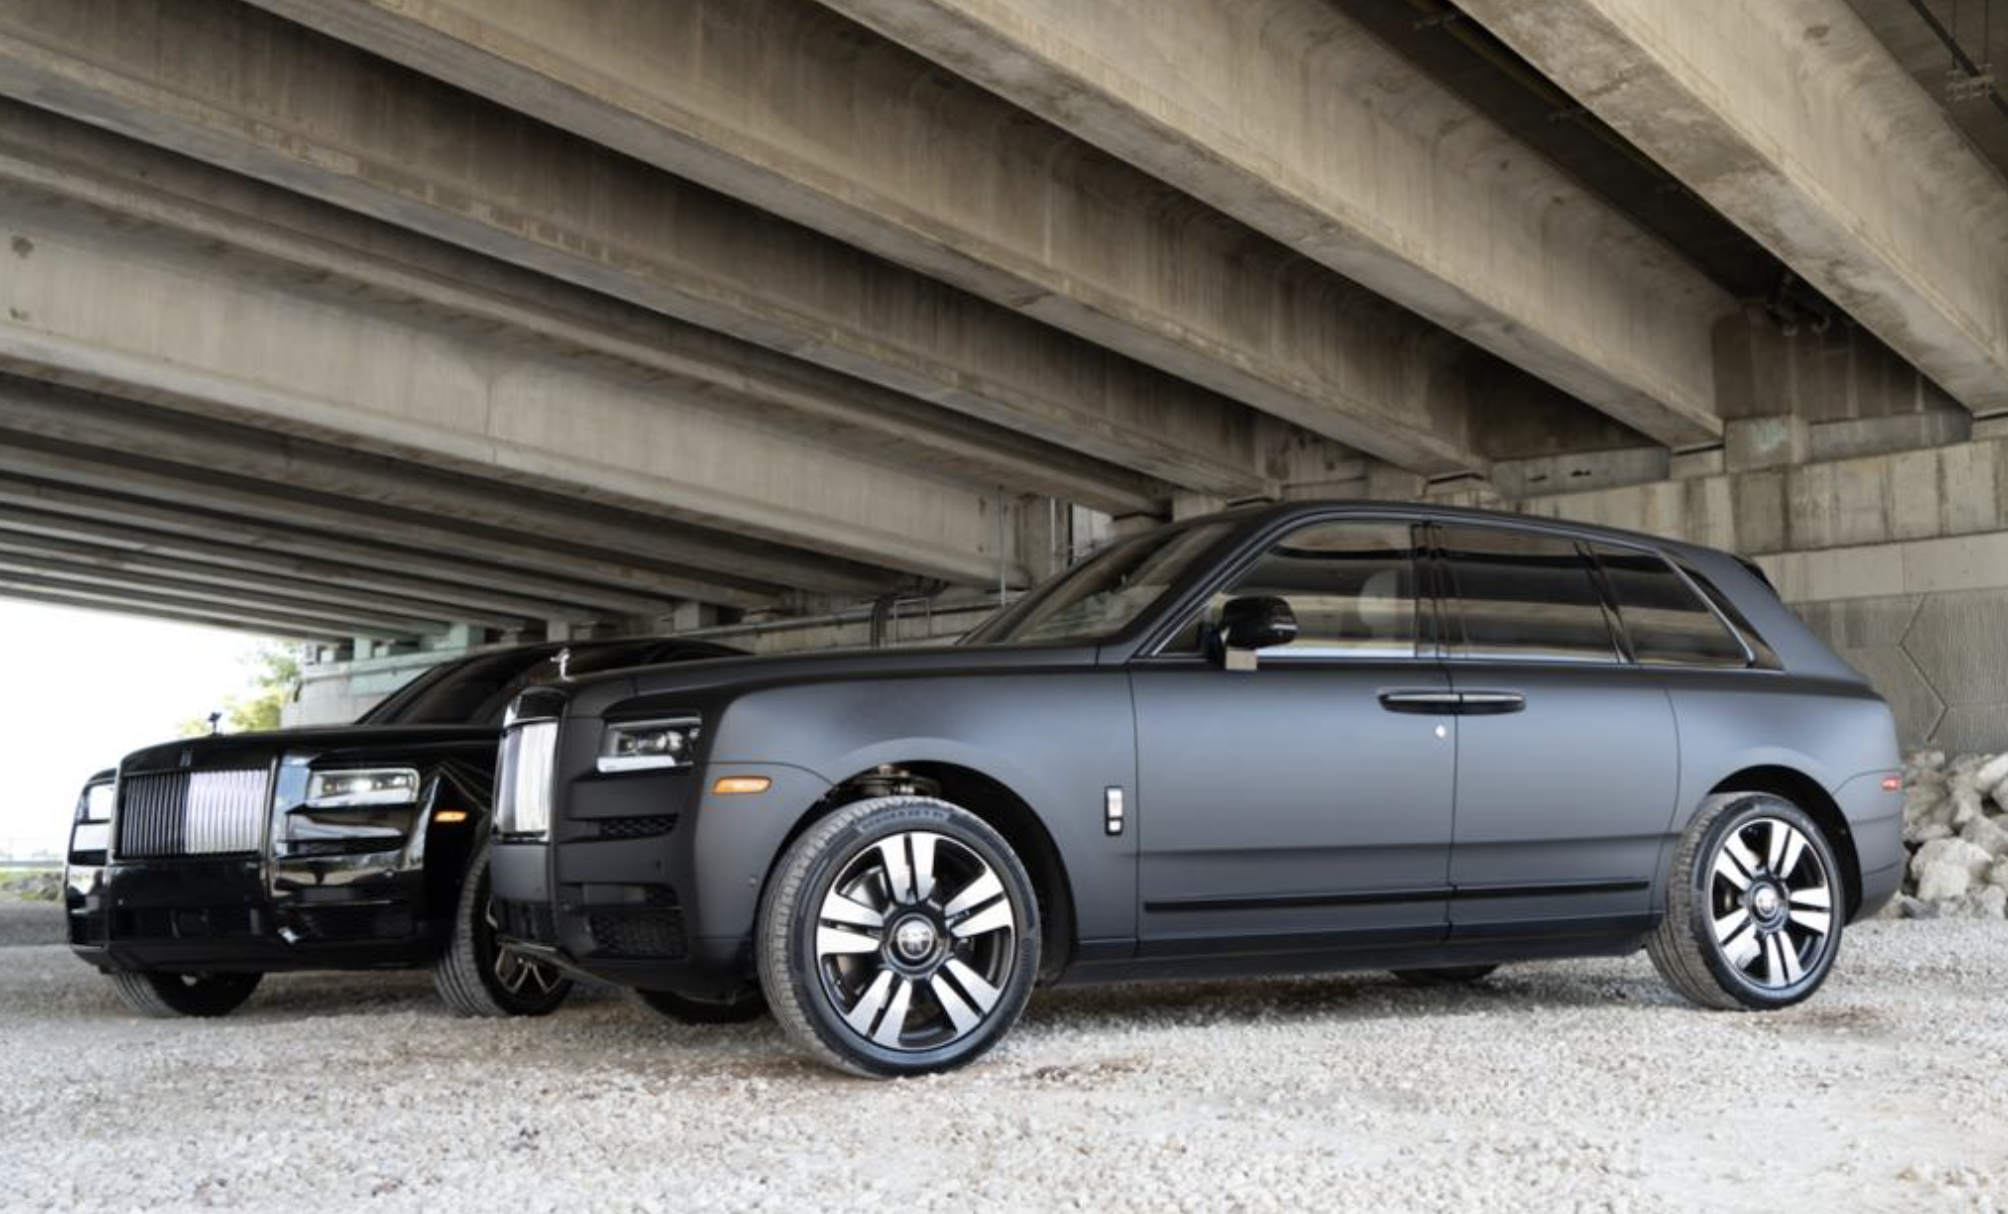 Image #3 of our  2021 ROLLS ROYCE CULLINAN - MATT BLACK    In Miami Fort Lauderdale Palm Beach South Florida